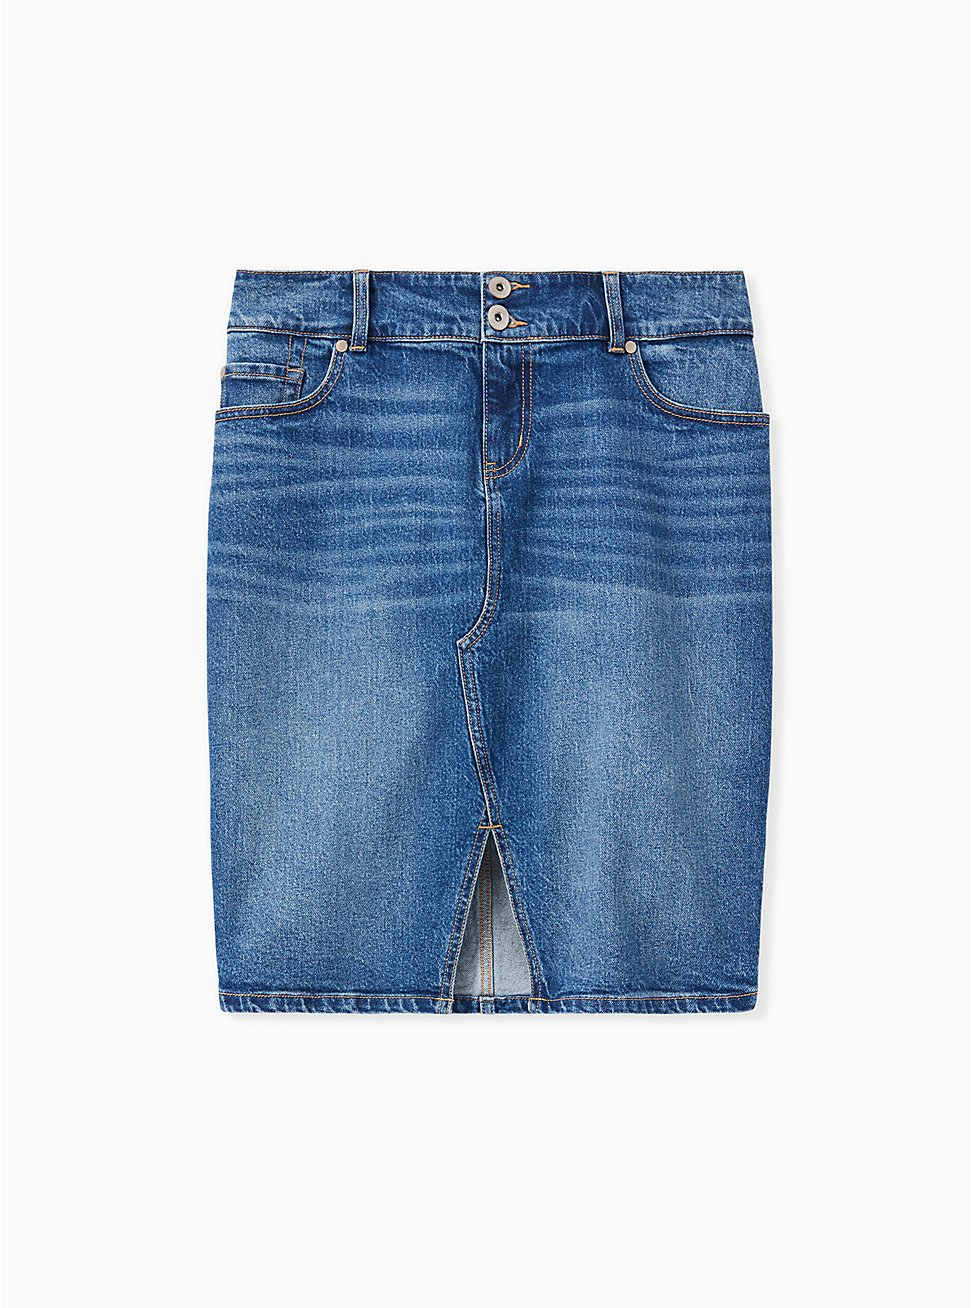 Denim Slit Front Midi Skirt - Medium Wash , , hi-res